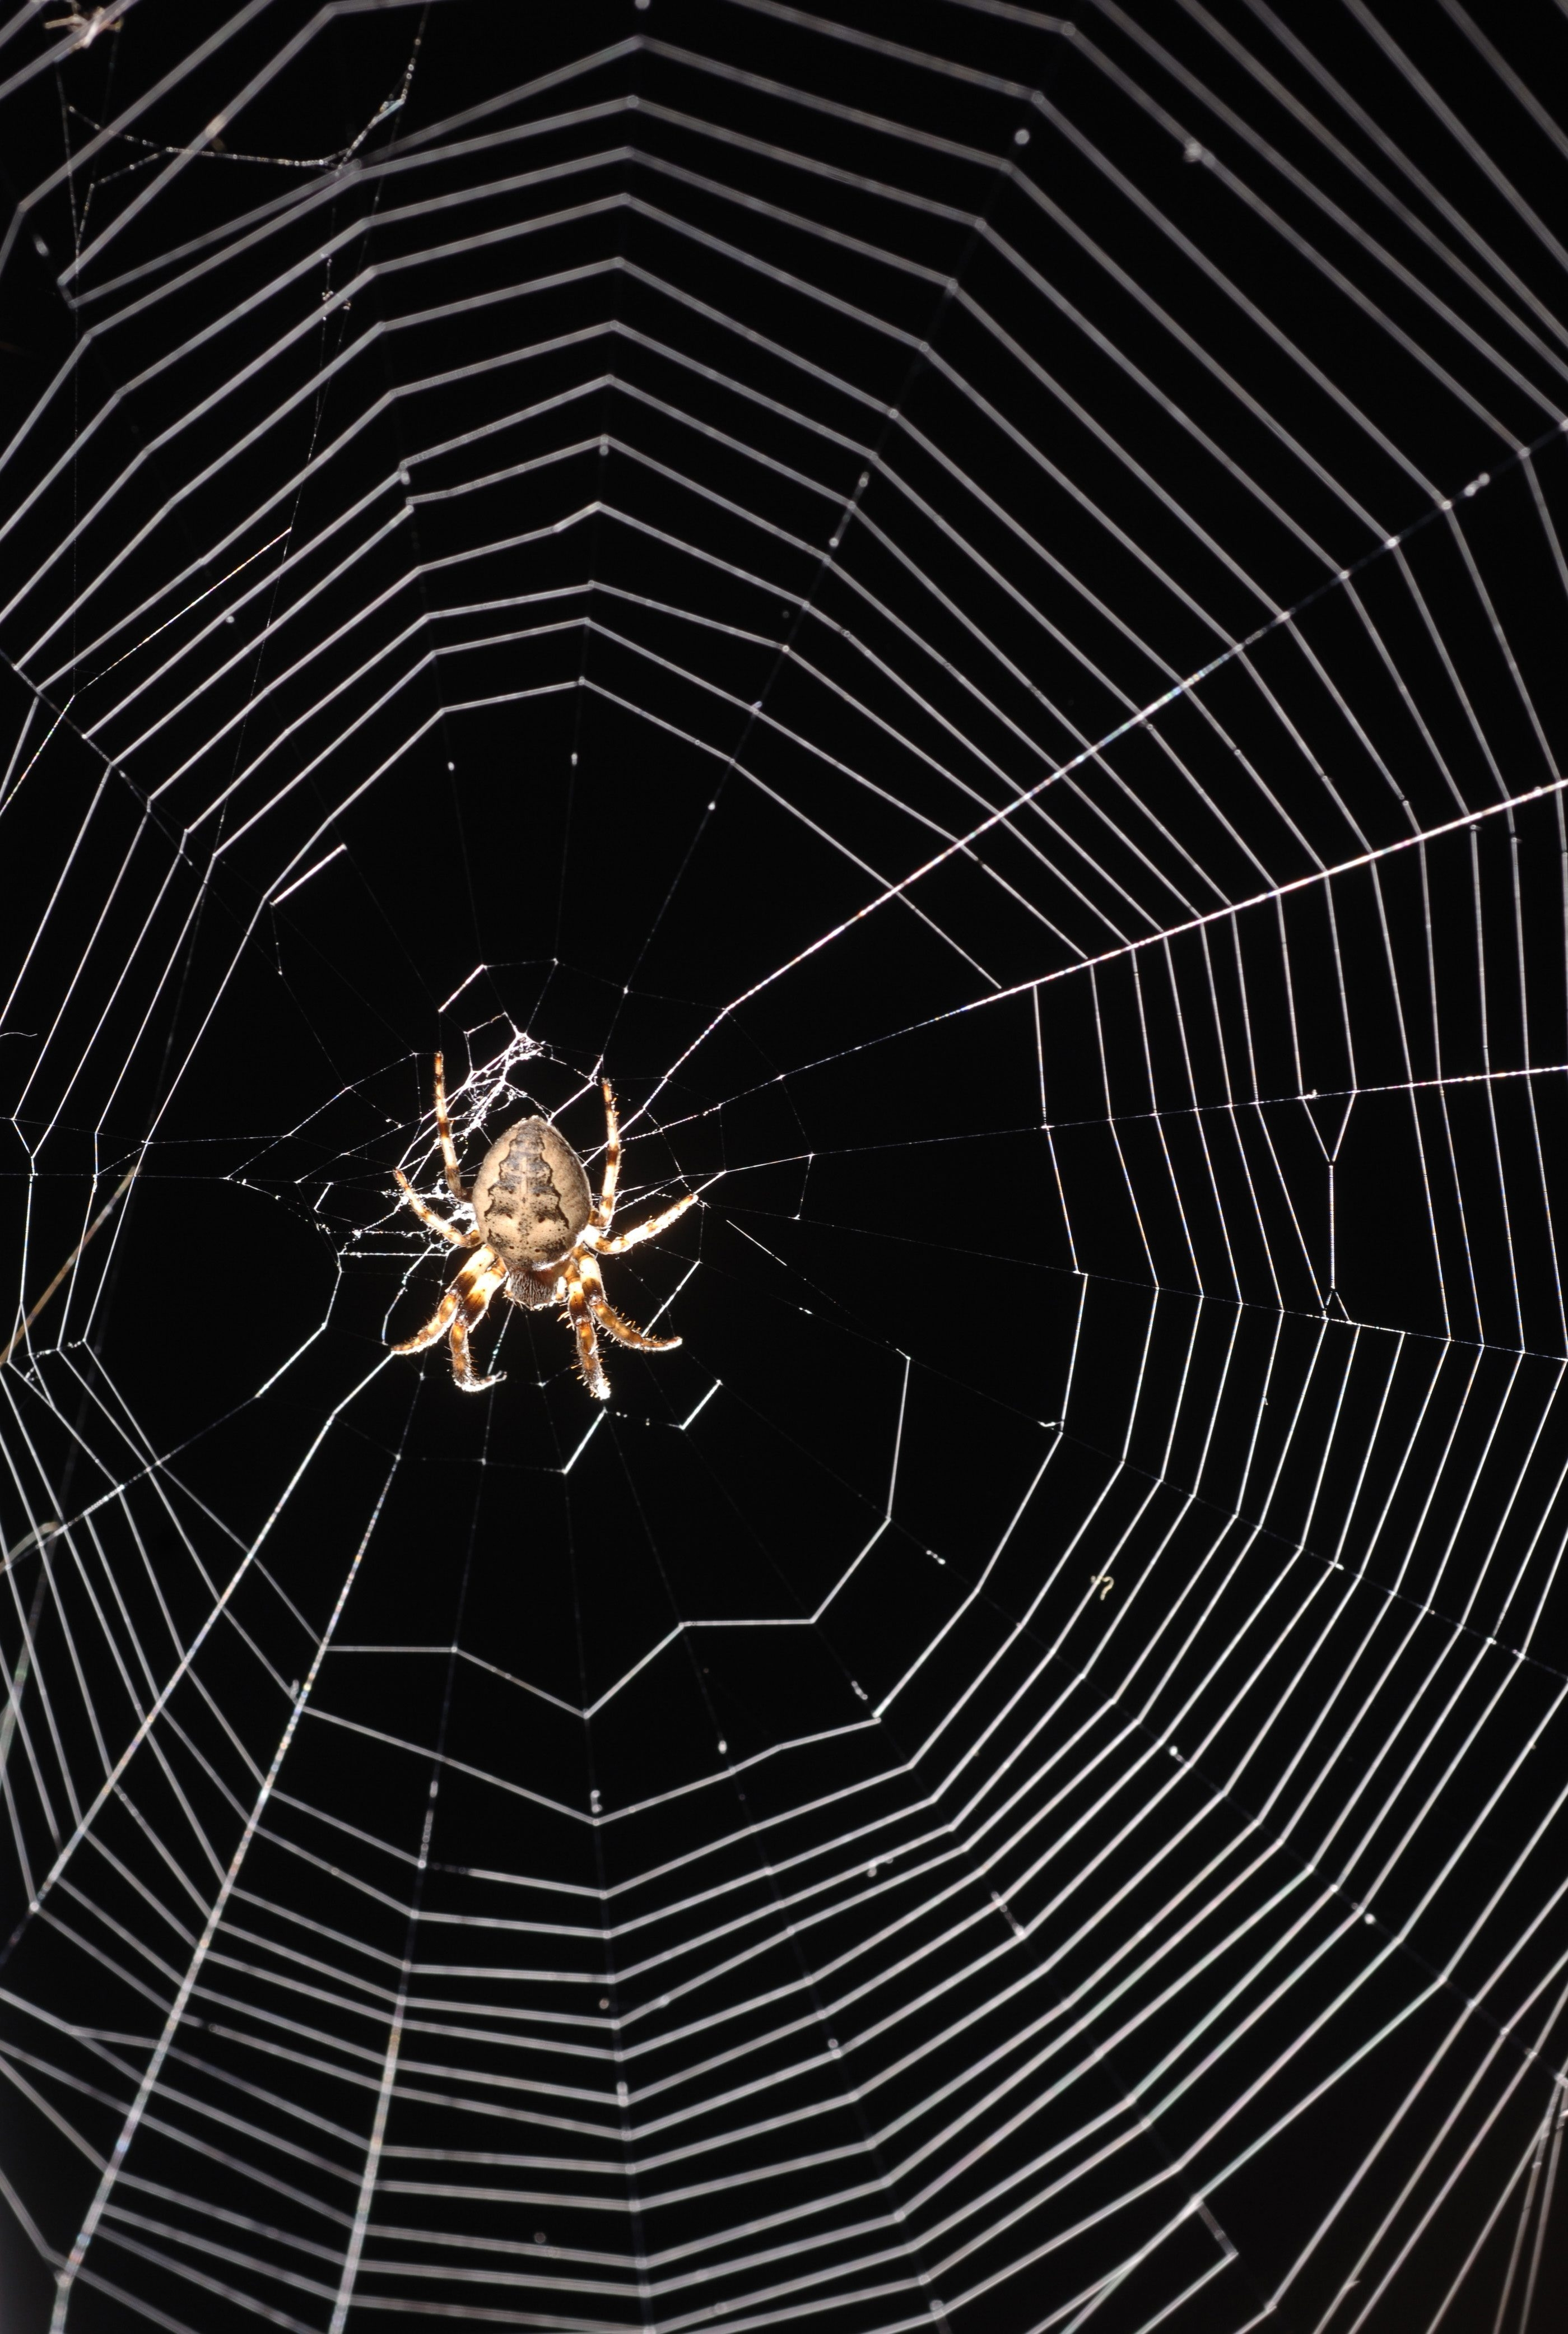 Spiders, which have poor eyesight, rely on vibrations from their webs to tell them that prey has been trapped.